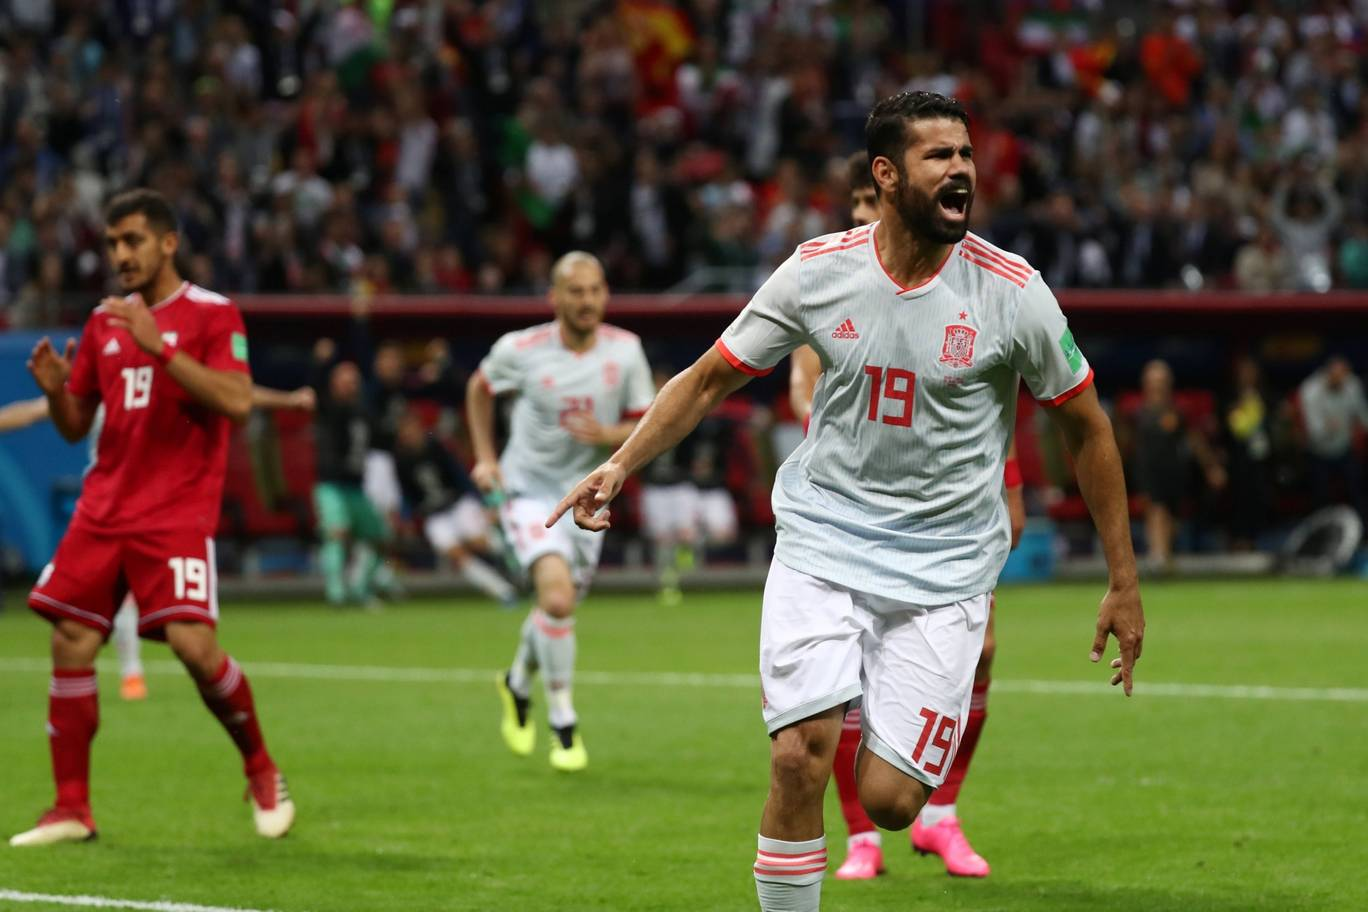 Iran 0-1 Spain: Diego Costa gets lucky to seal vital World Cup 2018 win